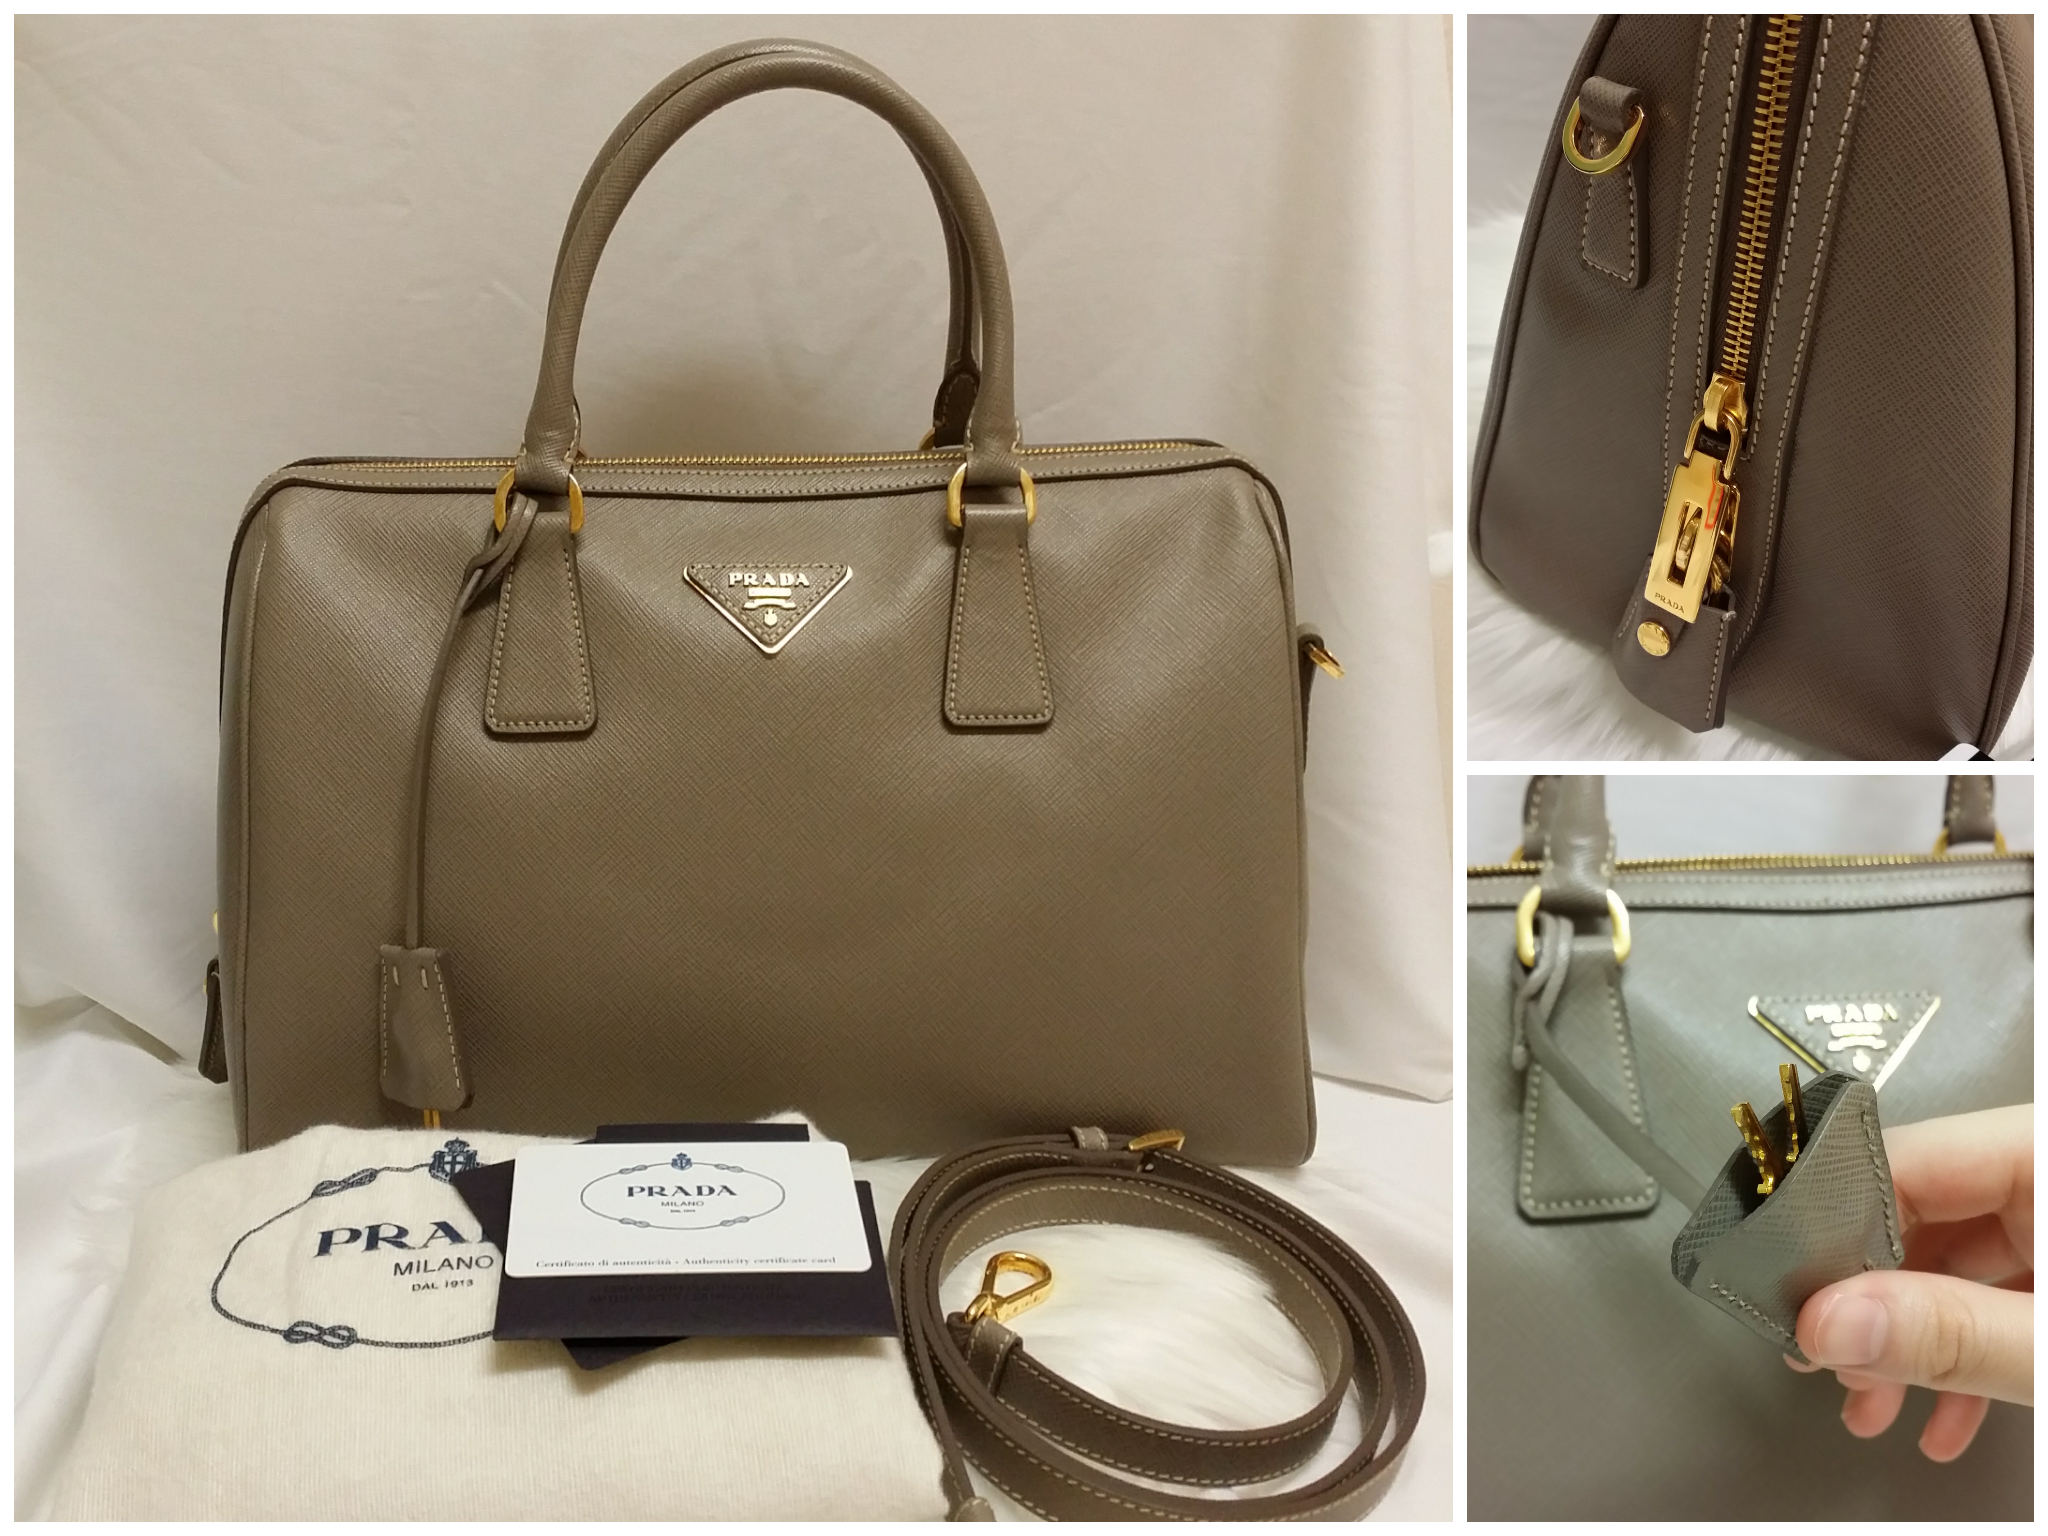 63ba37af4c5c PRADA BL0823 TESSUTO SAFFIANO LUX LEATHER BAG. 100% Authentic (Bought it  from London). Condition : 9.9/10 (only used once).